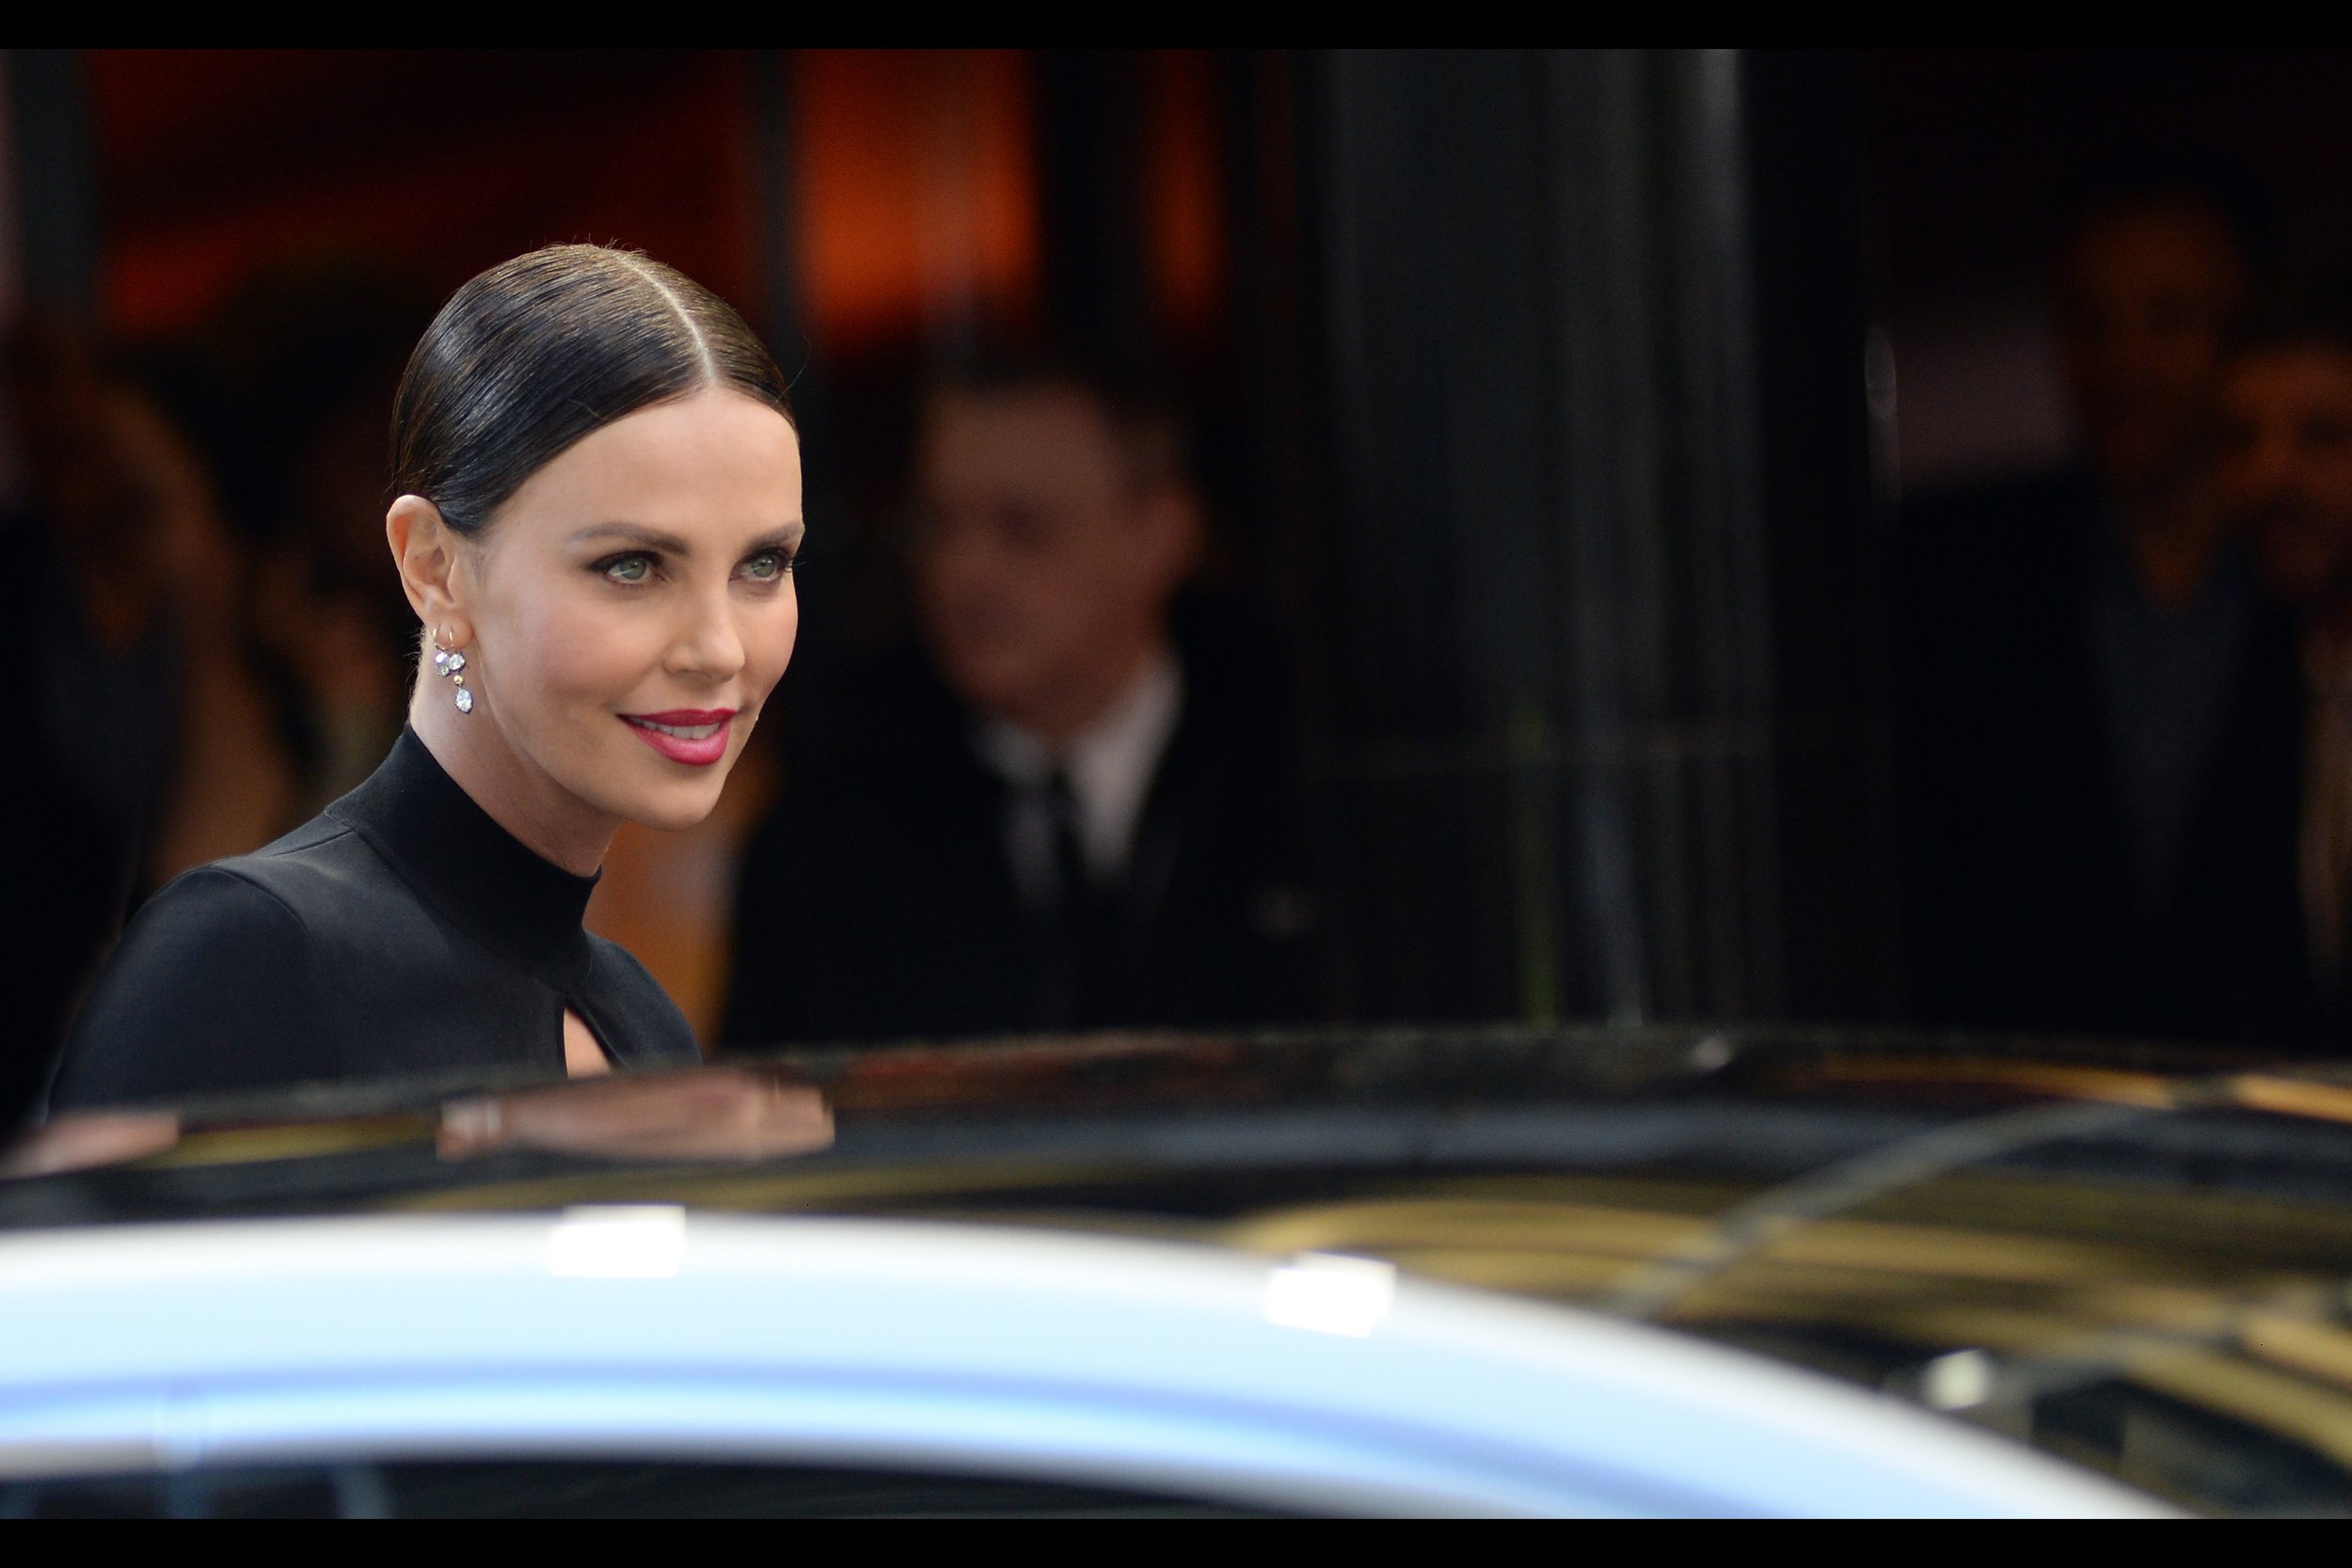 I was a bit sad that Charlize Theron didn't look in my direction before entering the car, like she did for the Paparazzi to my right…. but the more I look at this shot, the less certain I am that it's friendly.